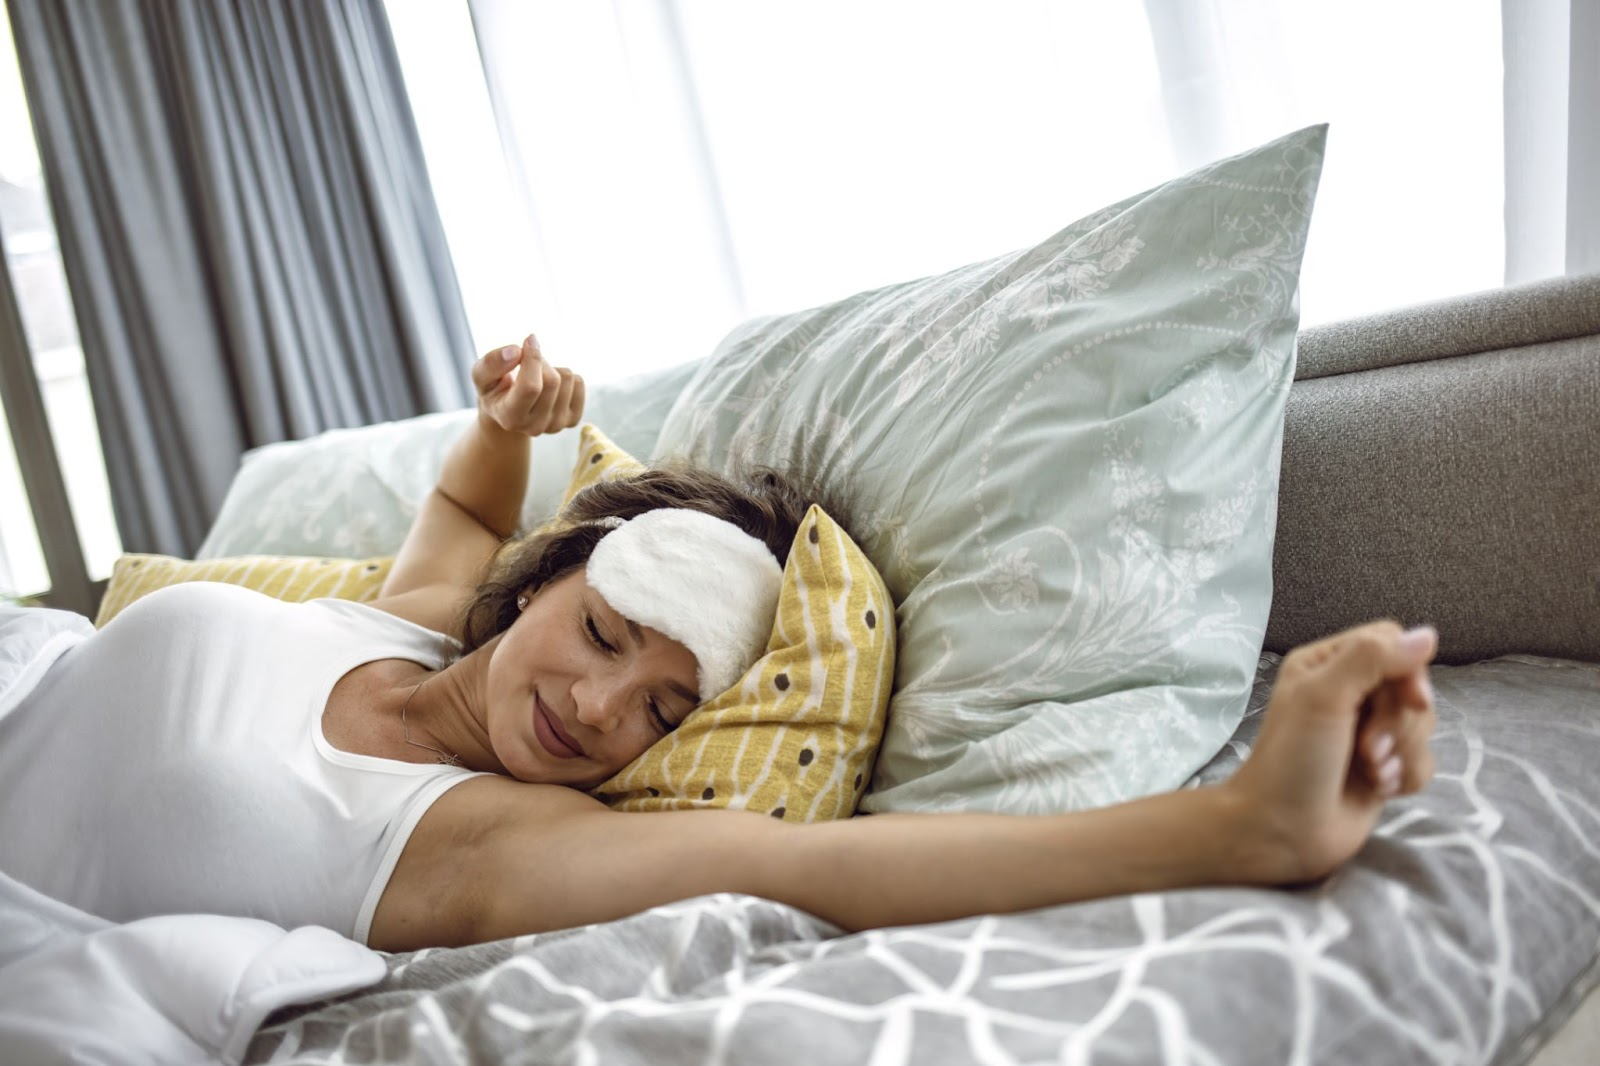 Natural energy: A woman stretches her arms as she wakes up